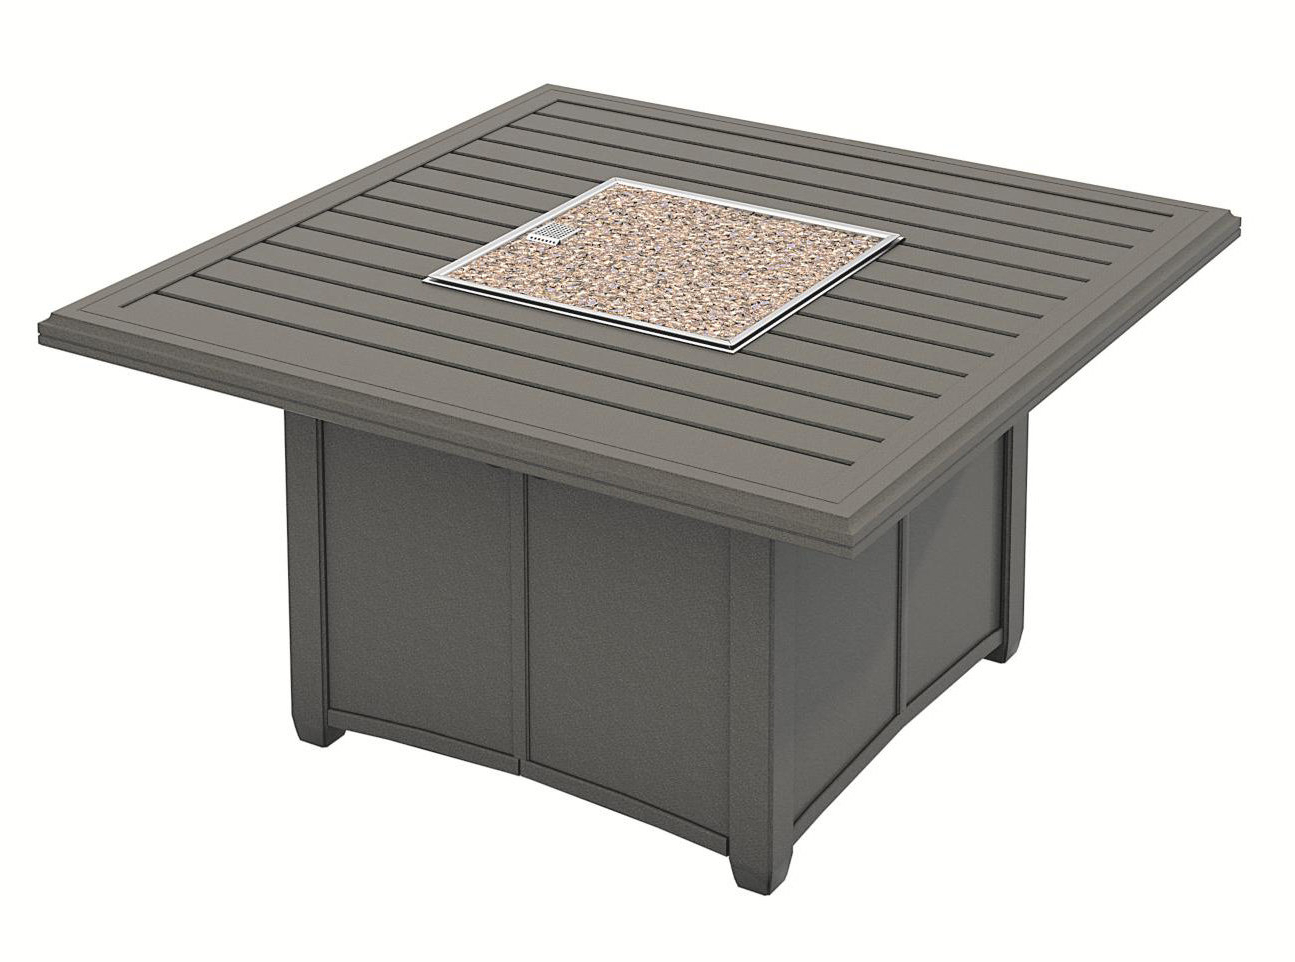 Fashionable Copper Grove Obsidian Black Tempered Glass Apartment Coffee Tables Within Banchetto Fire Pit Table (View 6 of 20)